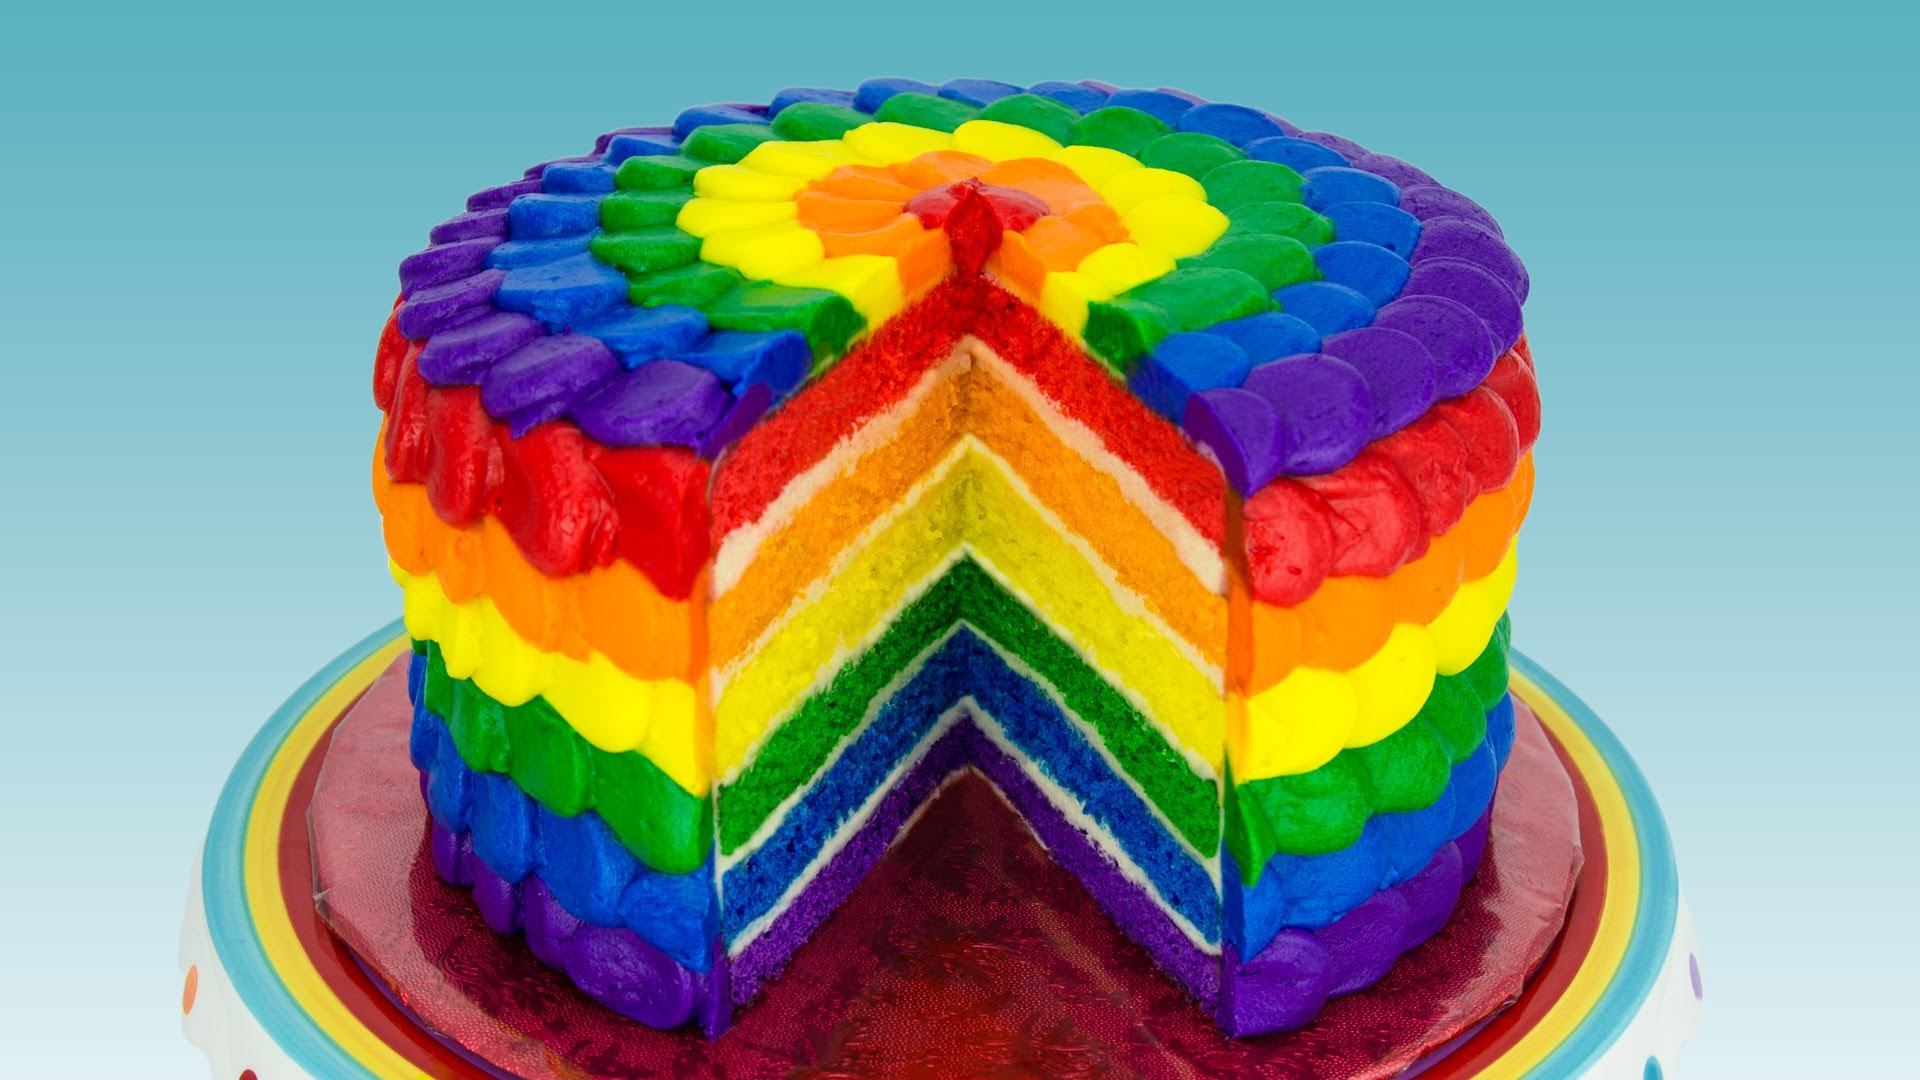 The Easiest Way to Make a Rainbow Cake